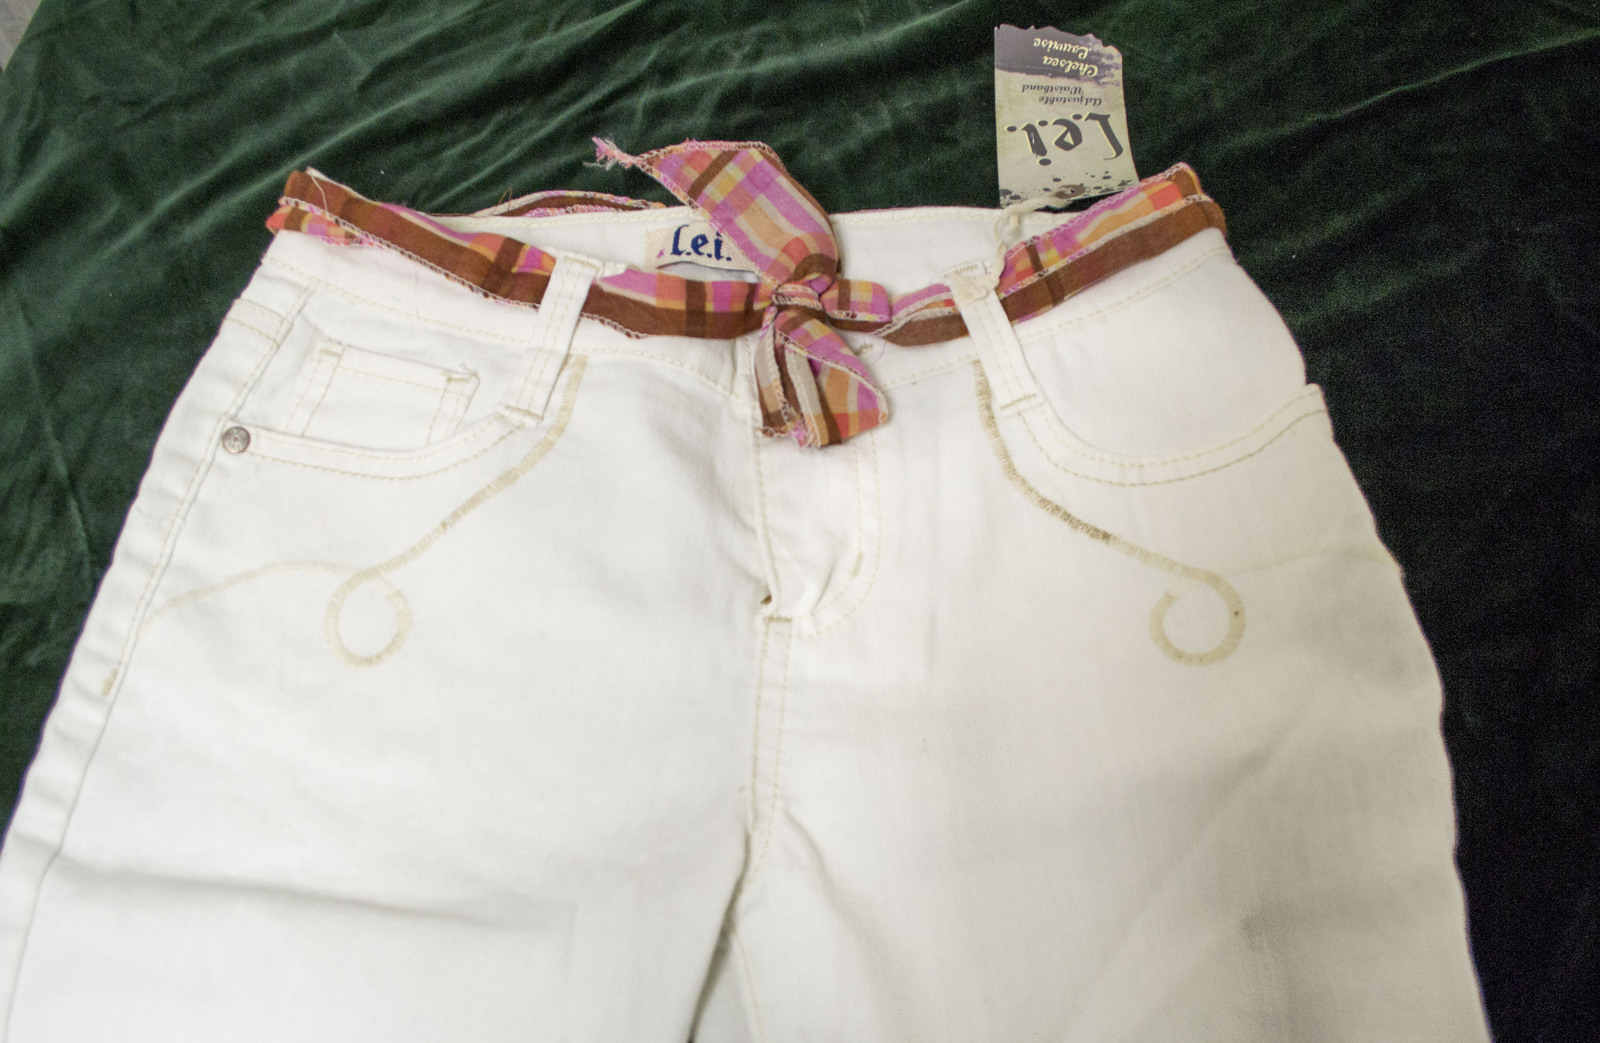 Free Ship Lot of 2 Firls LEI Denim Shorts and White Summer Jeans